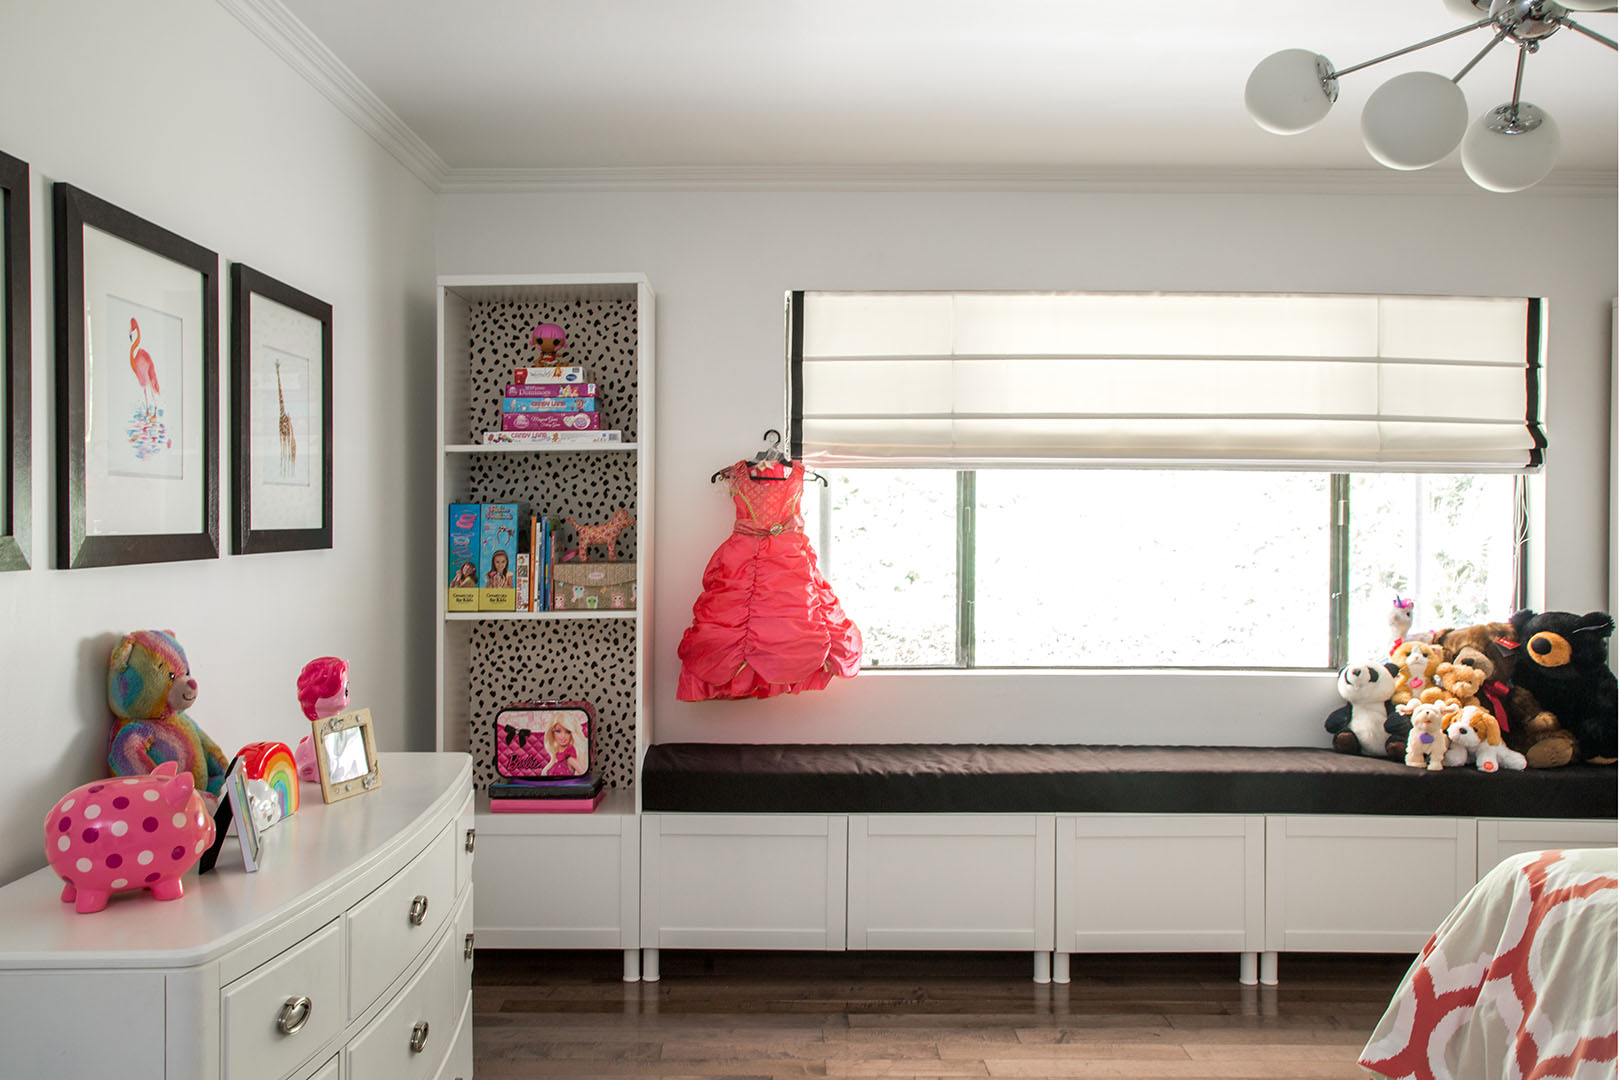 Kids room interior design in Oakland